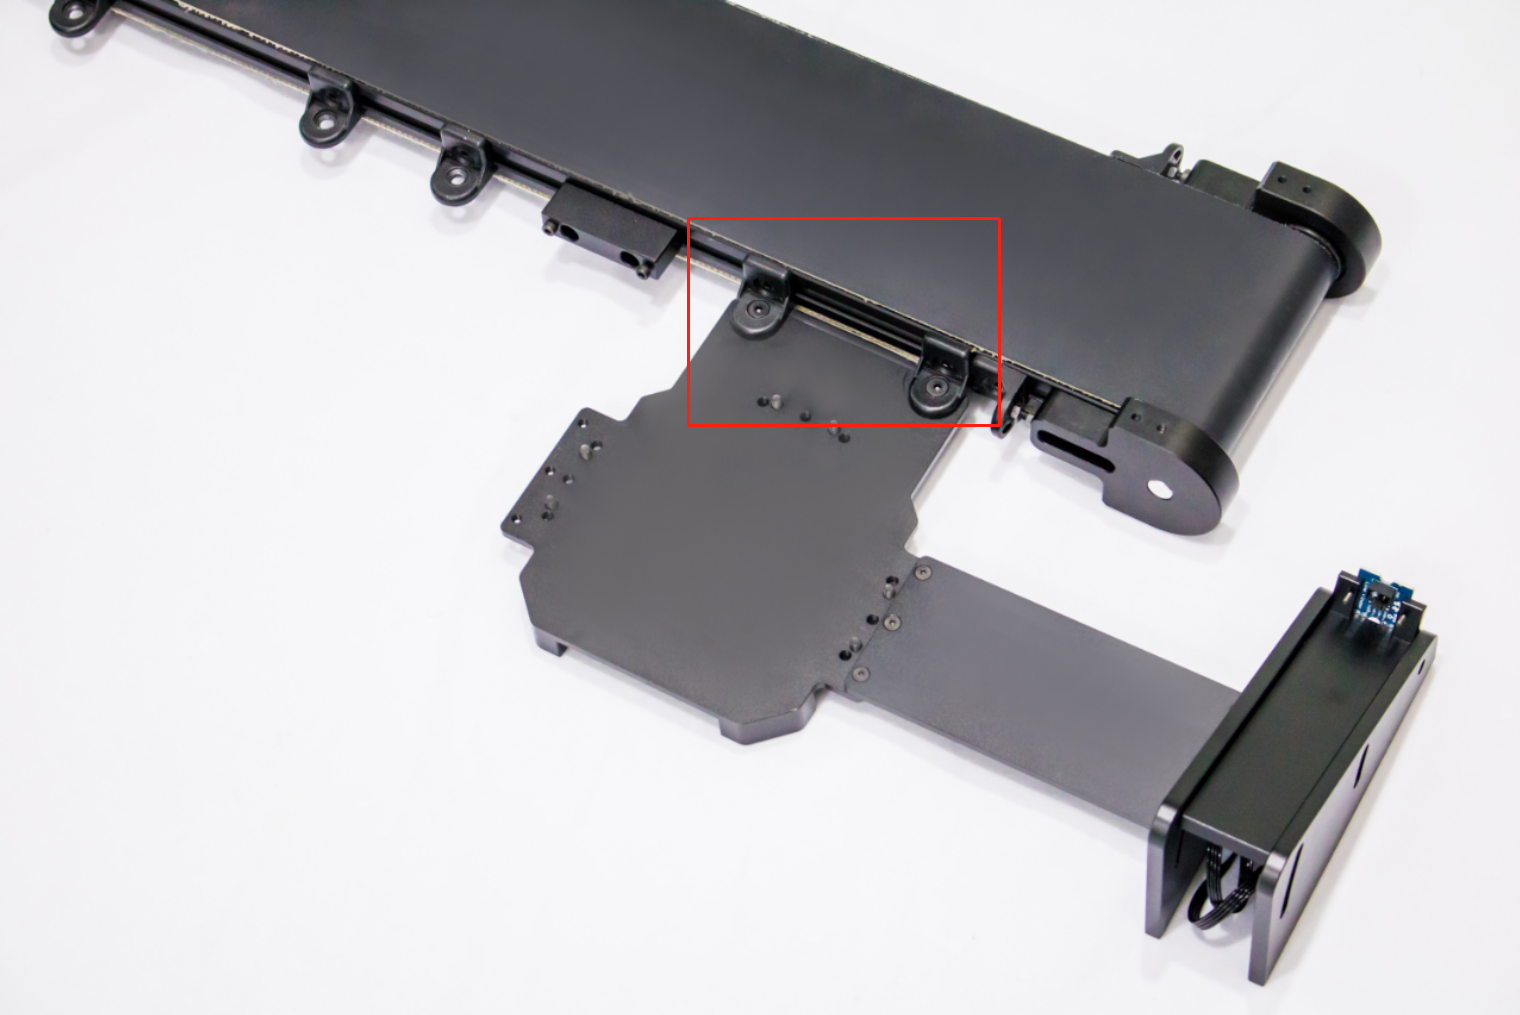 Picture of Install the UArm Stator (with Material Slide): Fix the UArm Stator on the Conveyor Belt